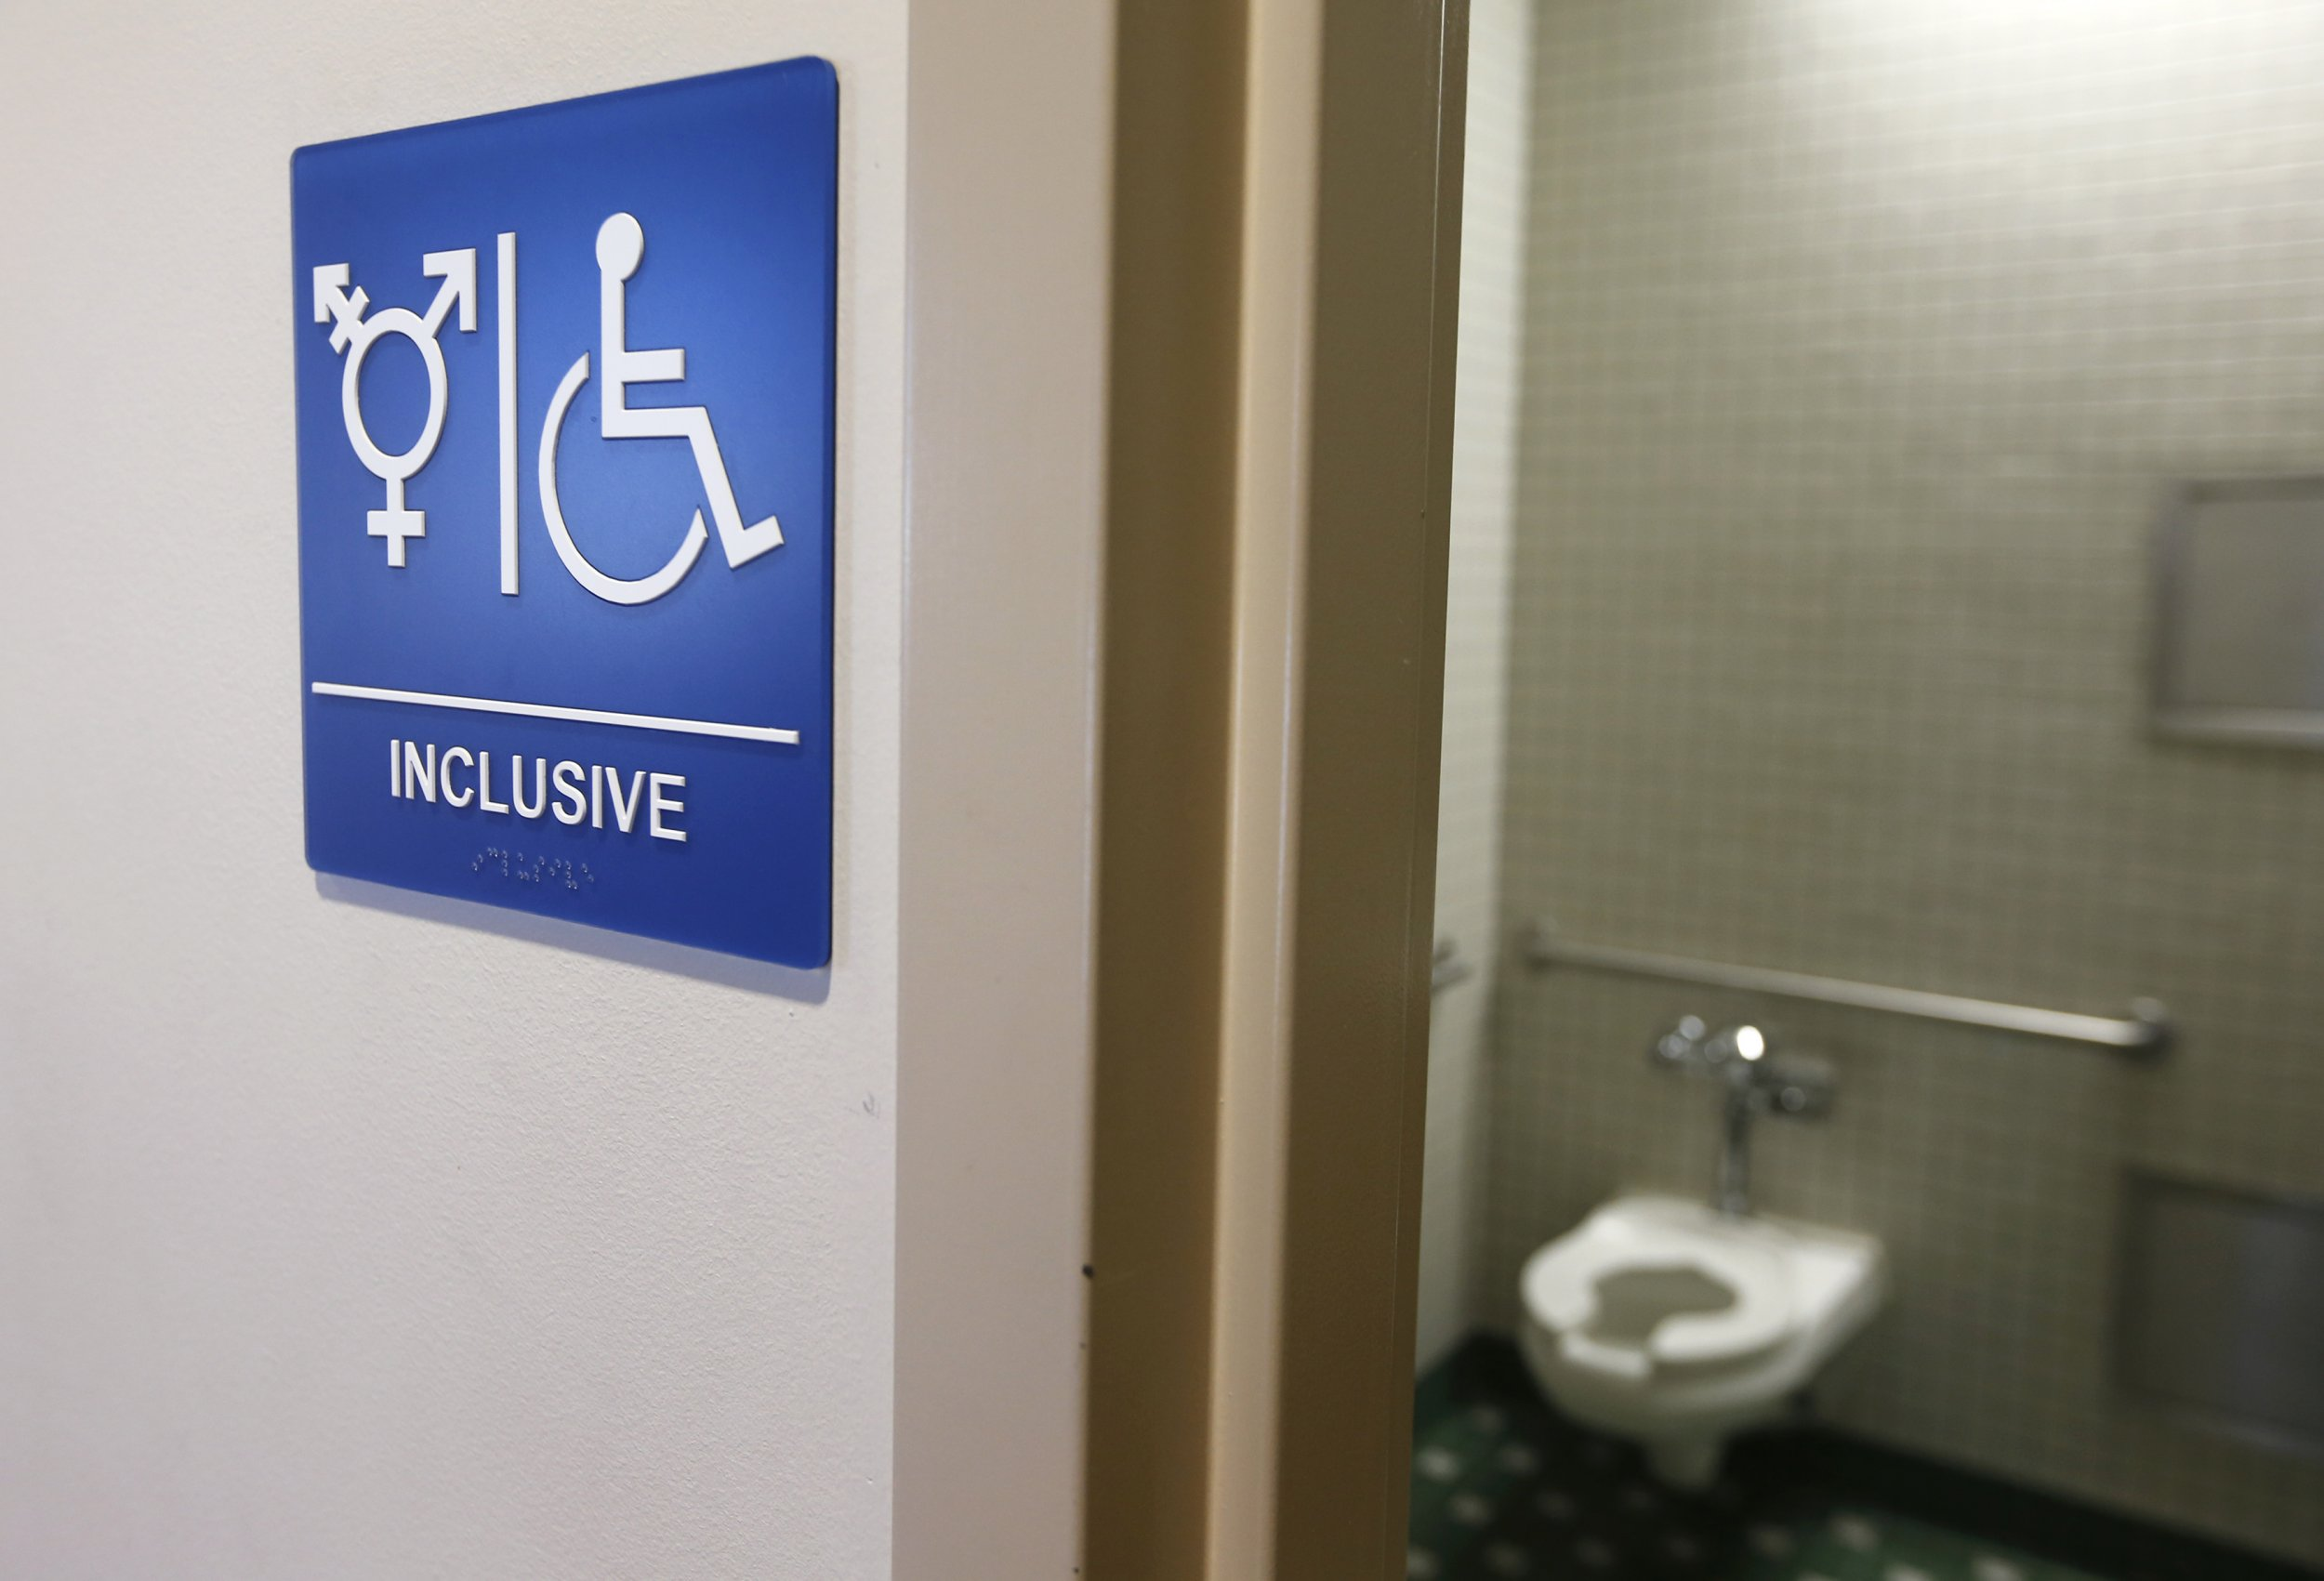 Bathroom Signs History denying transgender people bathroom access is linked to suicide